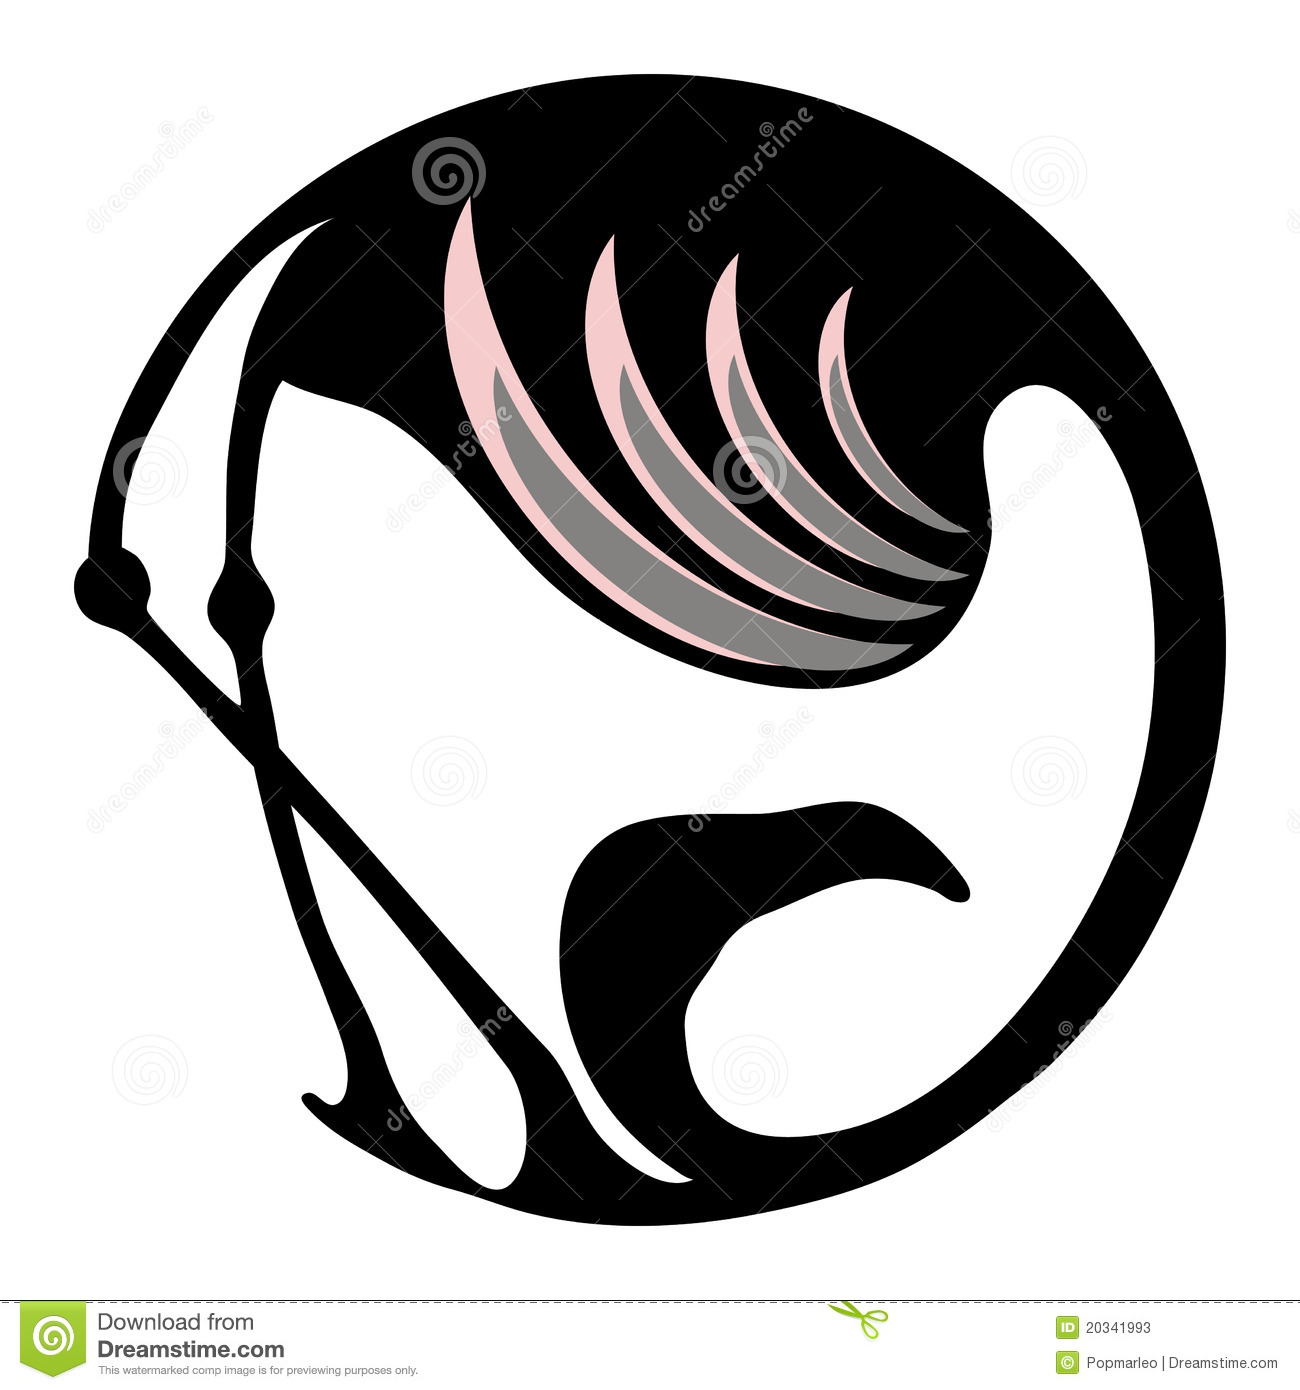 Flamingo stylized symbol or logo in a circle